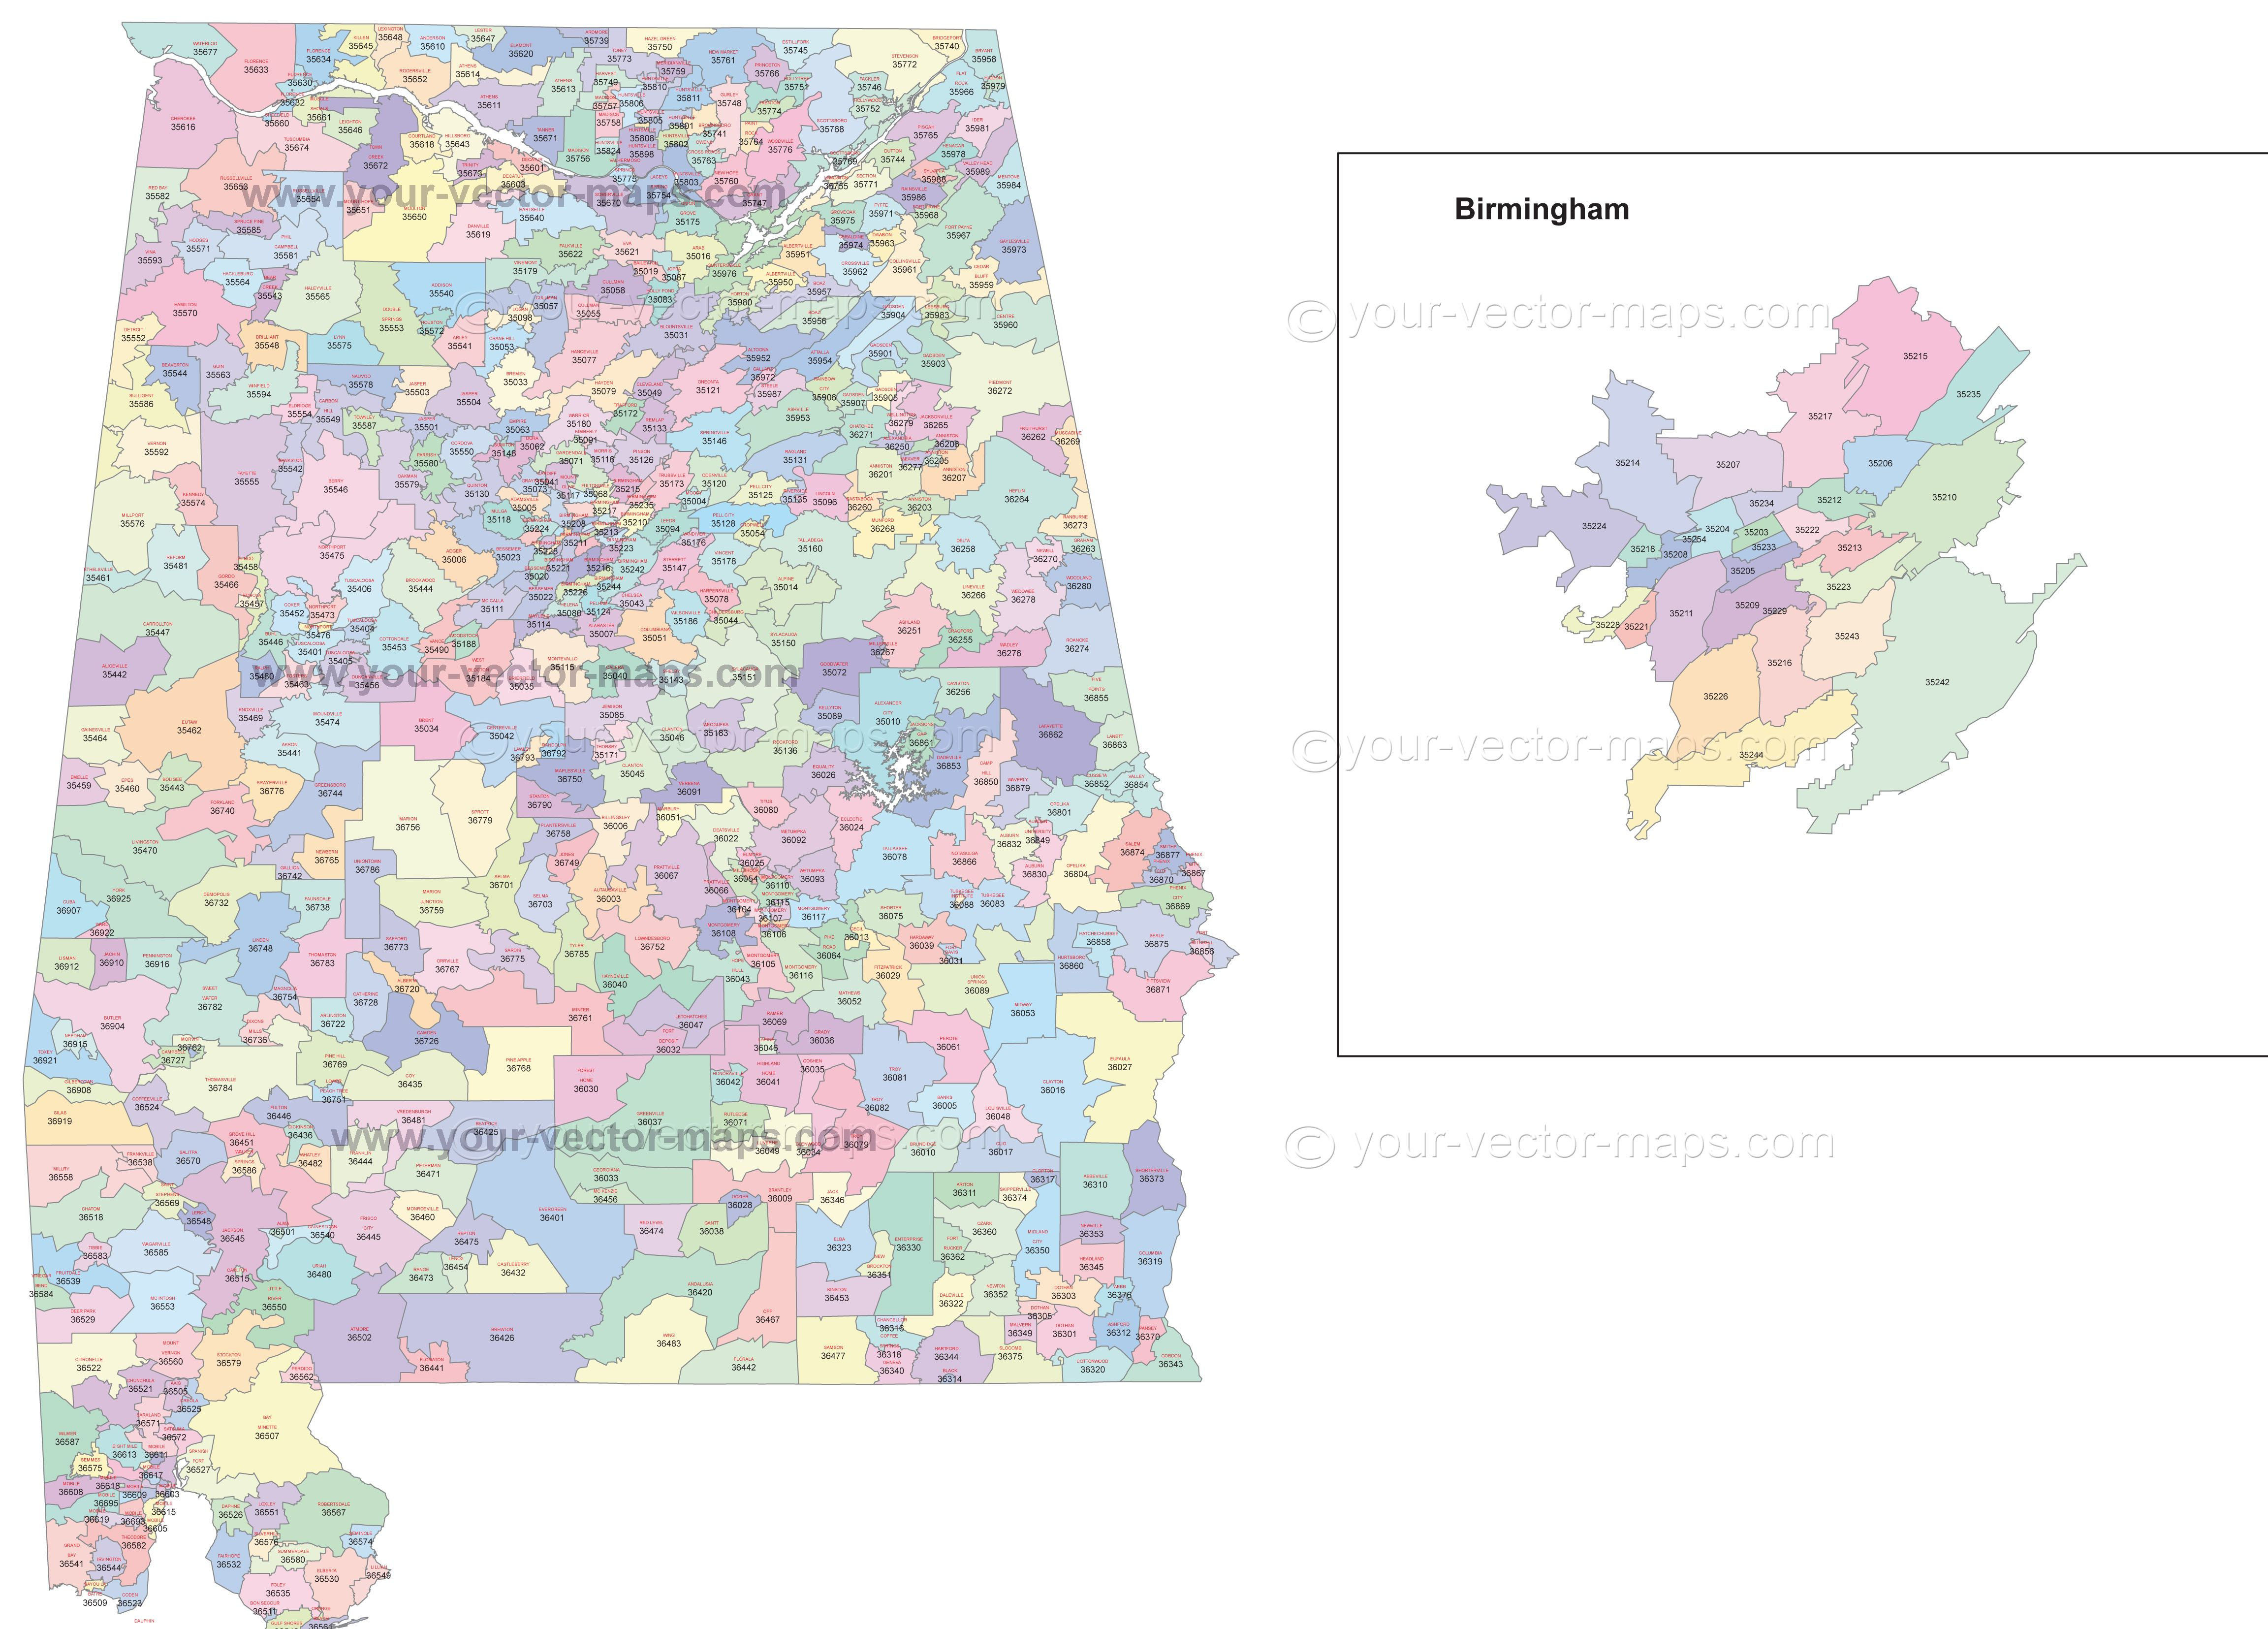 Alabama State Zip Code Map With Location Name Original Postal - Us zip code to state